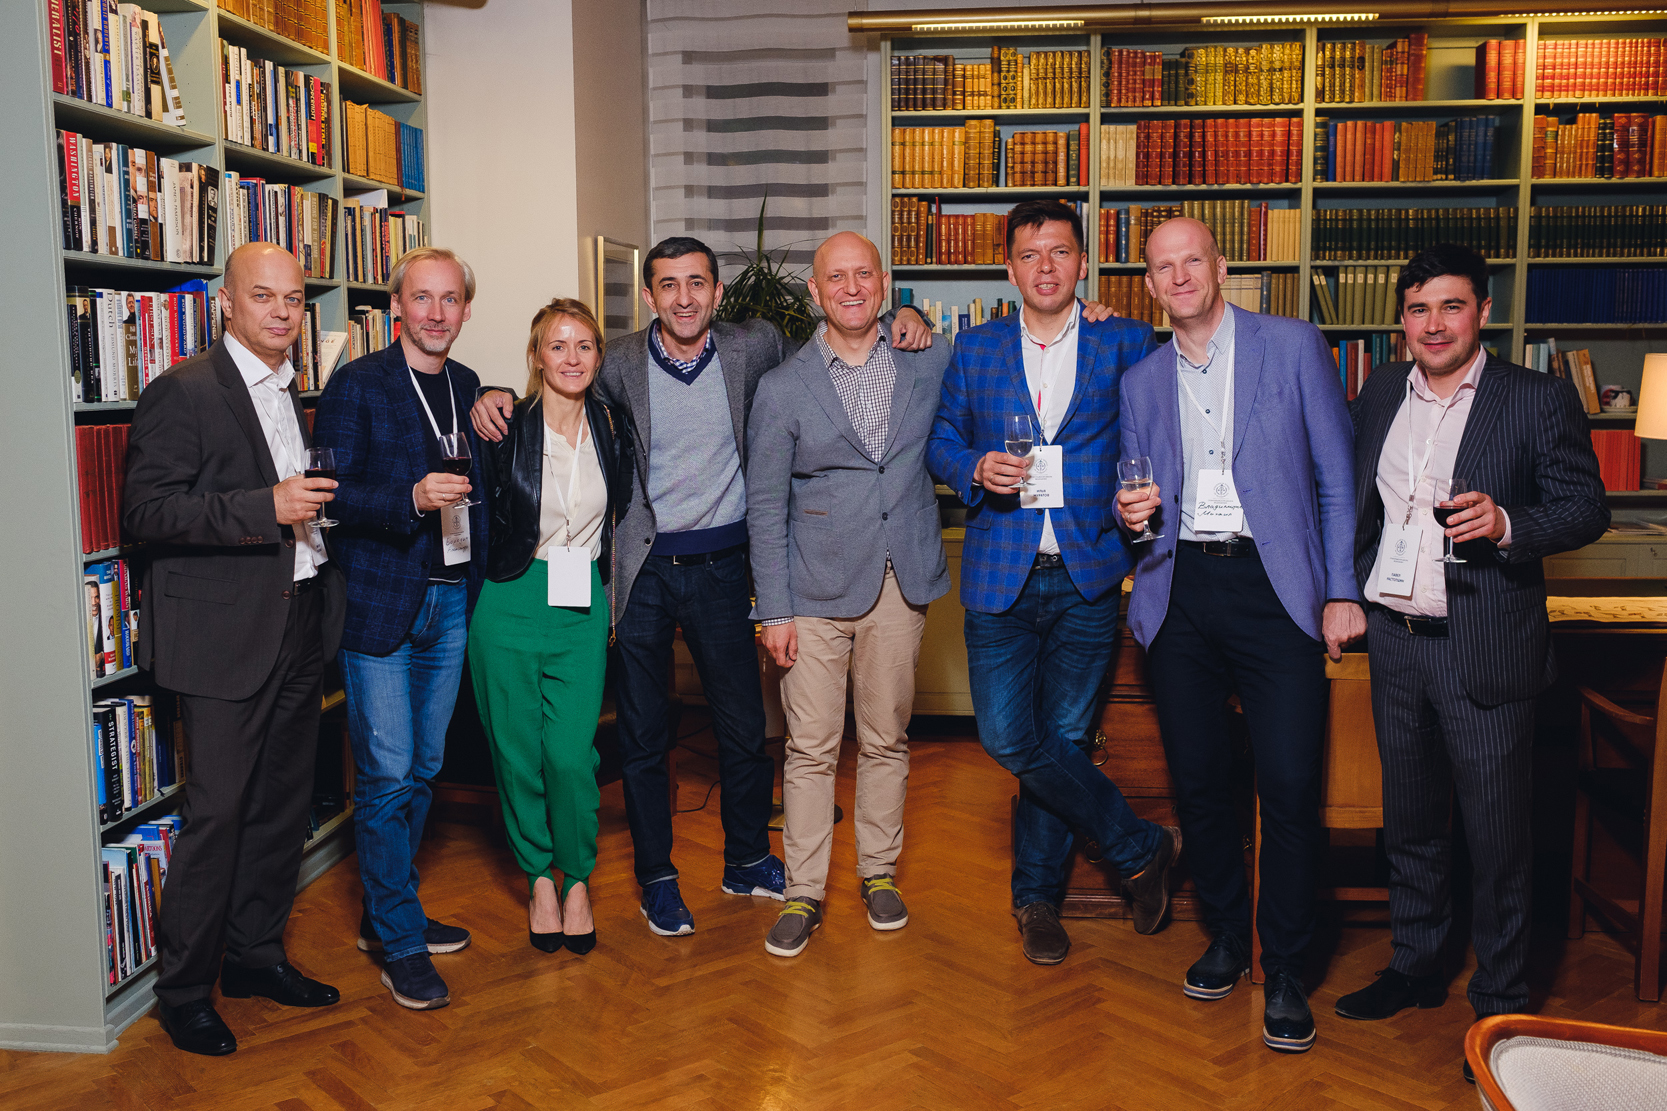 Stockholm School of Economics Russia Alumni during meeting in the Swedish Embassy in Moscow in honor of the SSE Russia Alumni Community